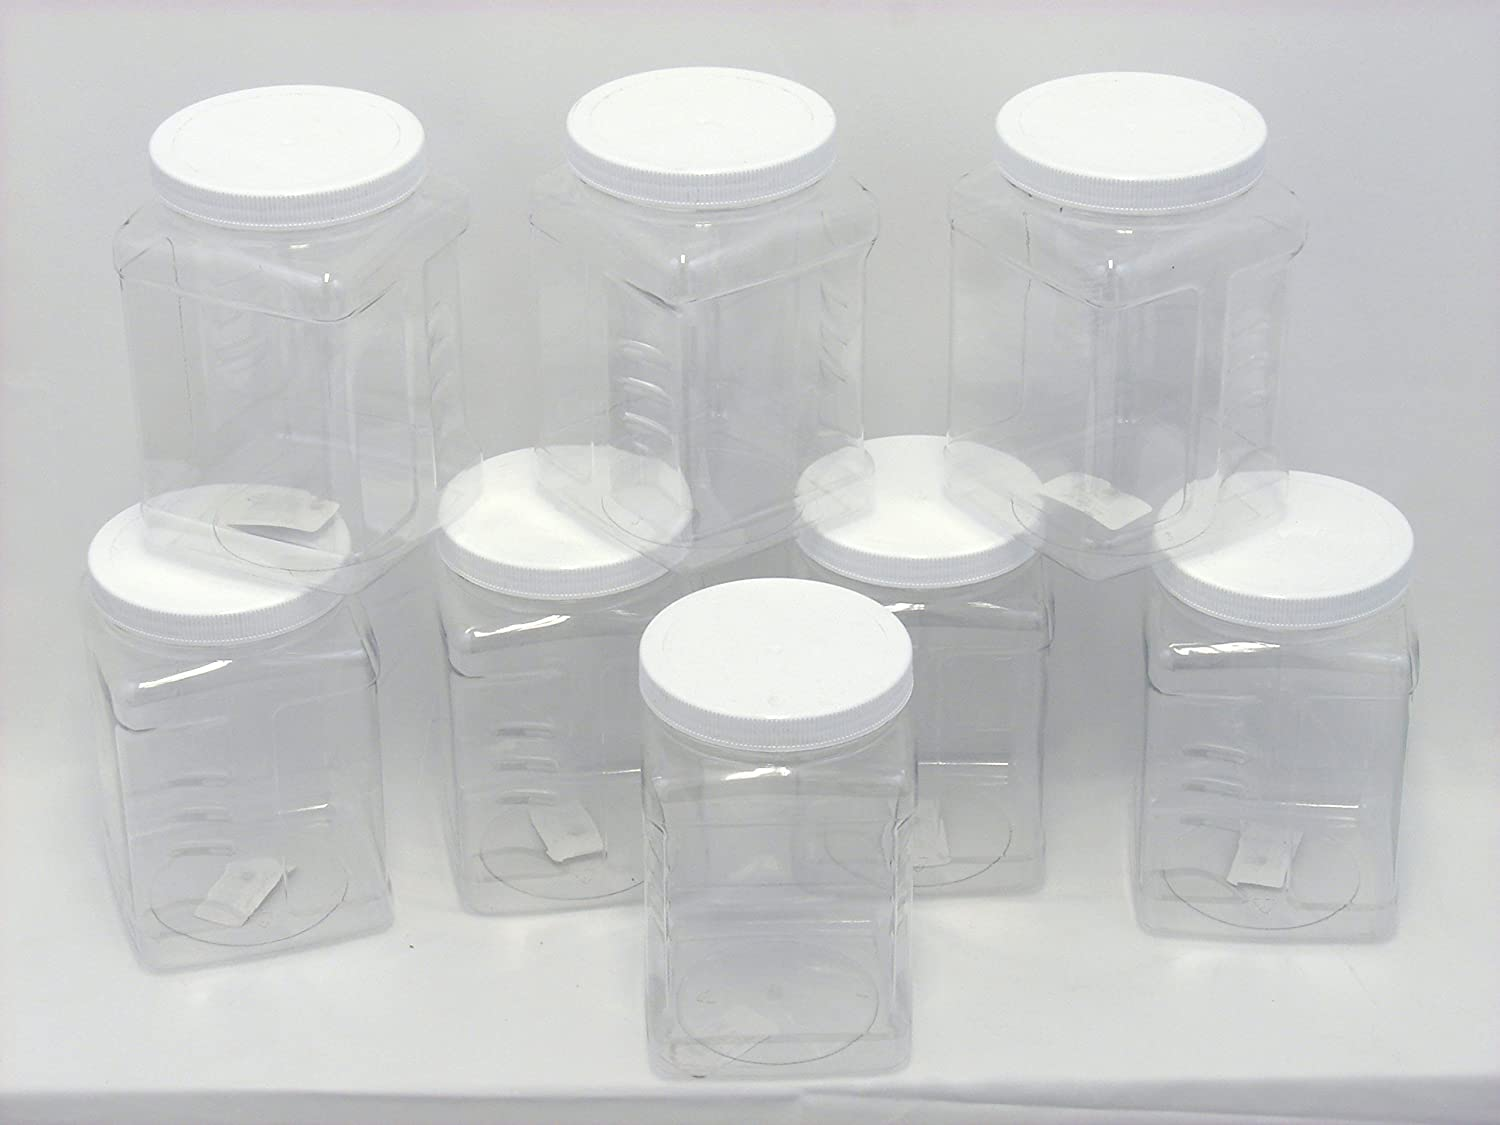 8 Pack of 64 oz PET Containers, Clear Plastic Kitchen Food Storage with Grip